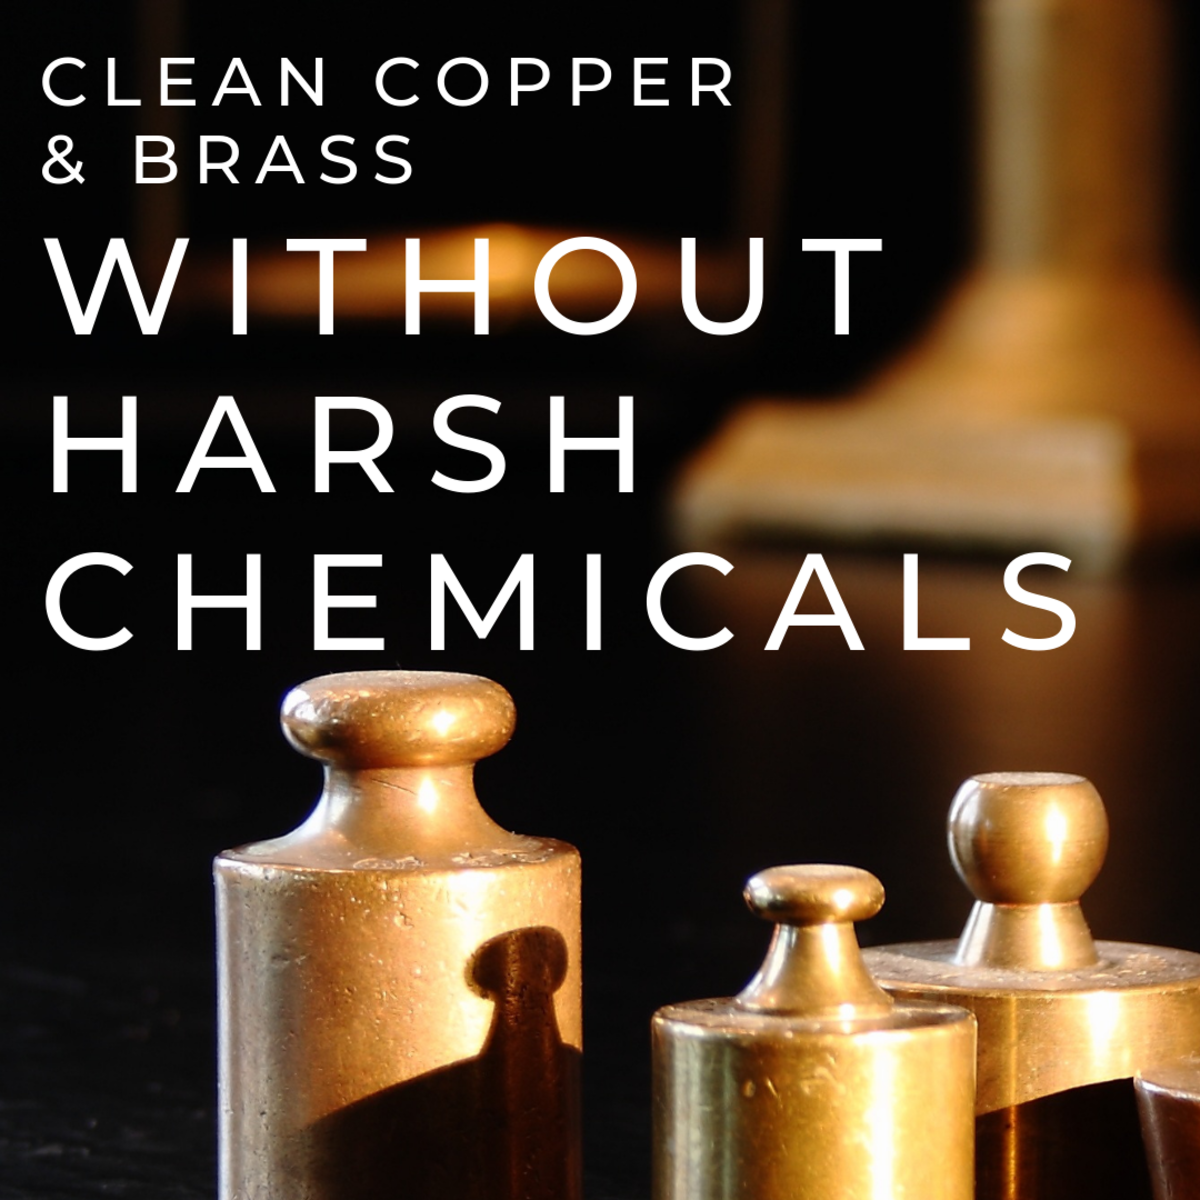 How to Clean Copper and Brass Without Chemicals